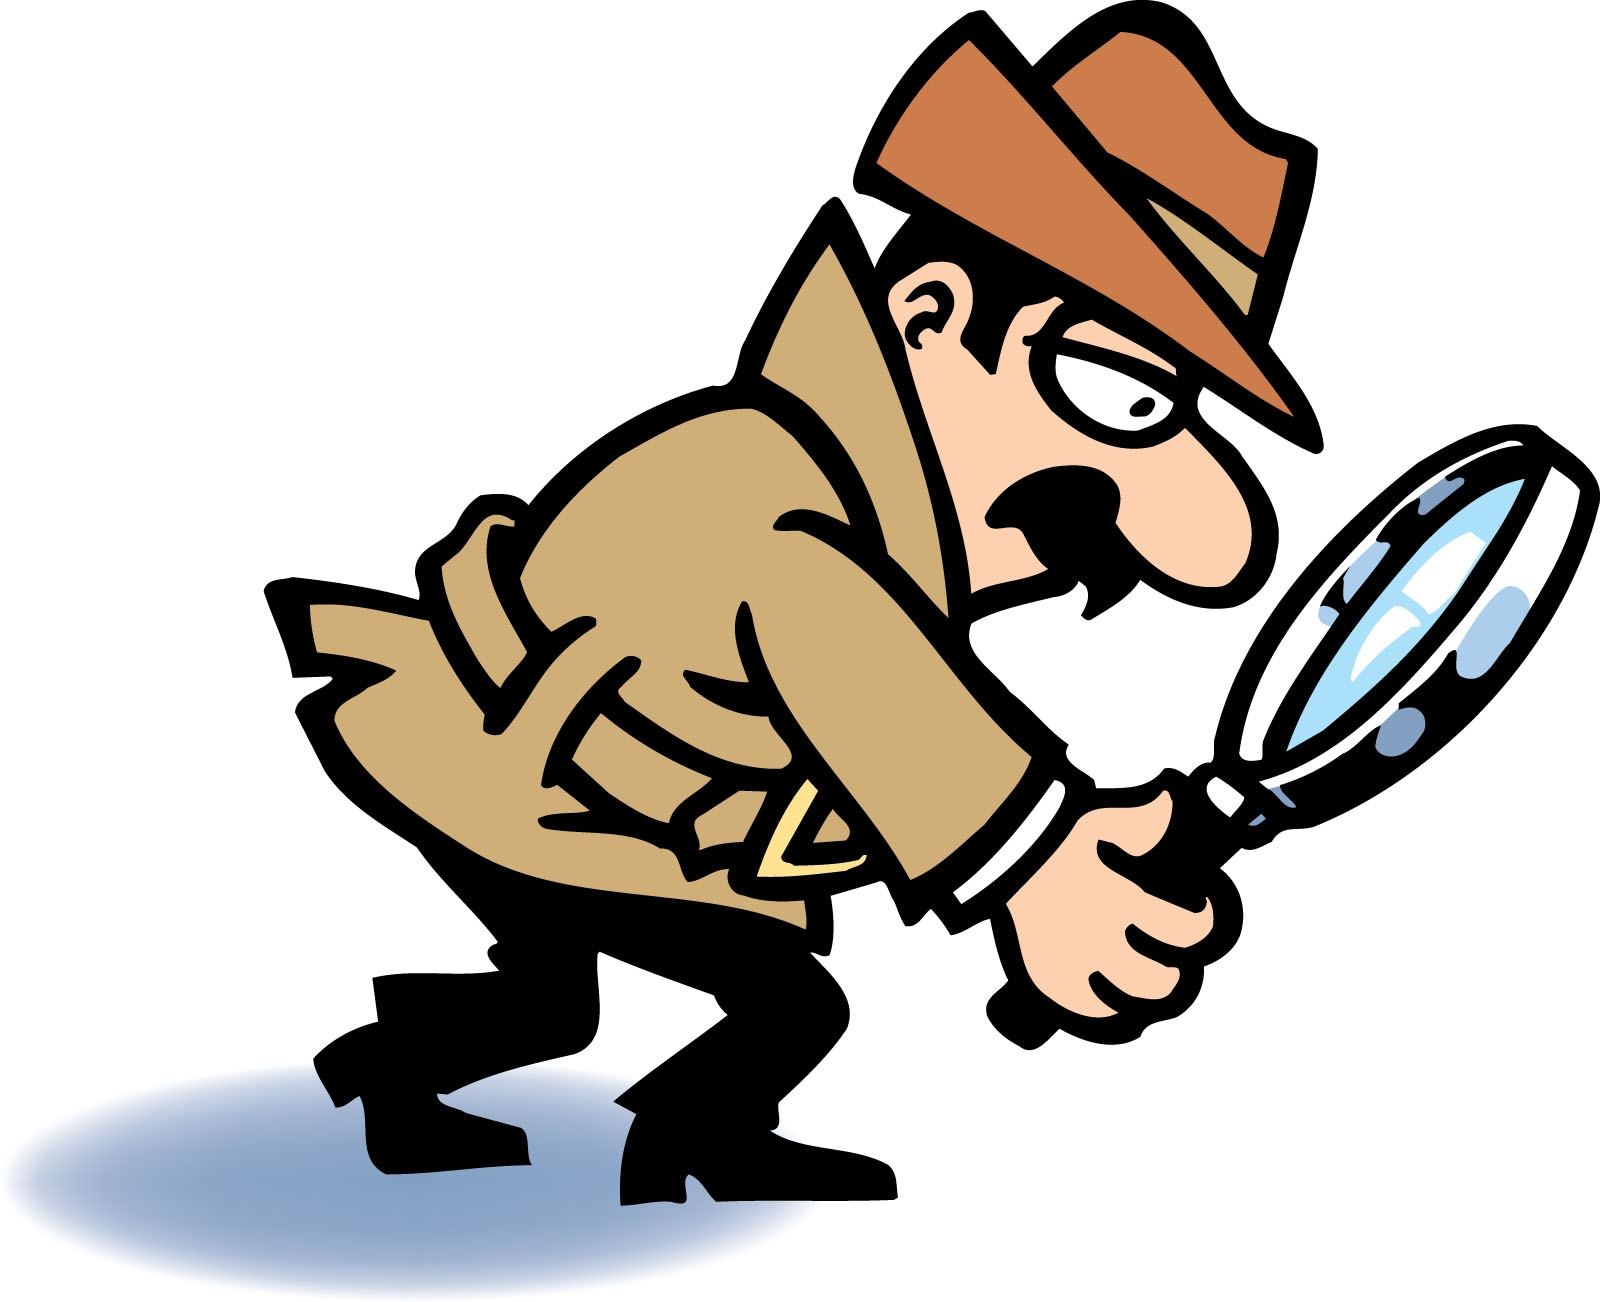 Detective clipart. Awesome gallery digital collection